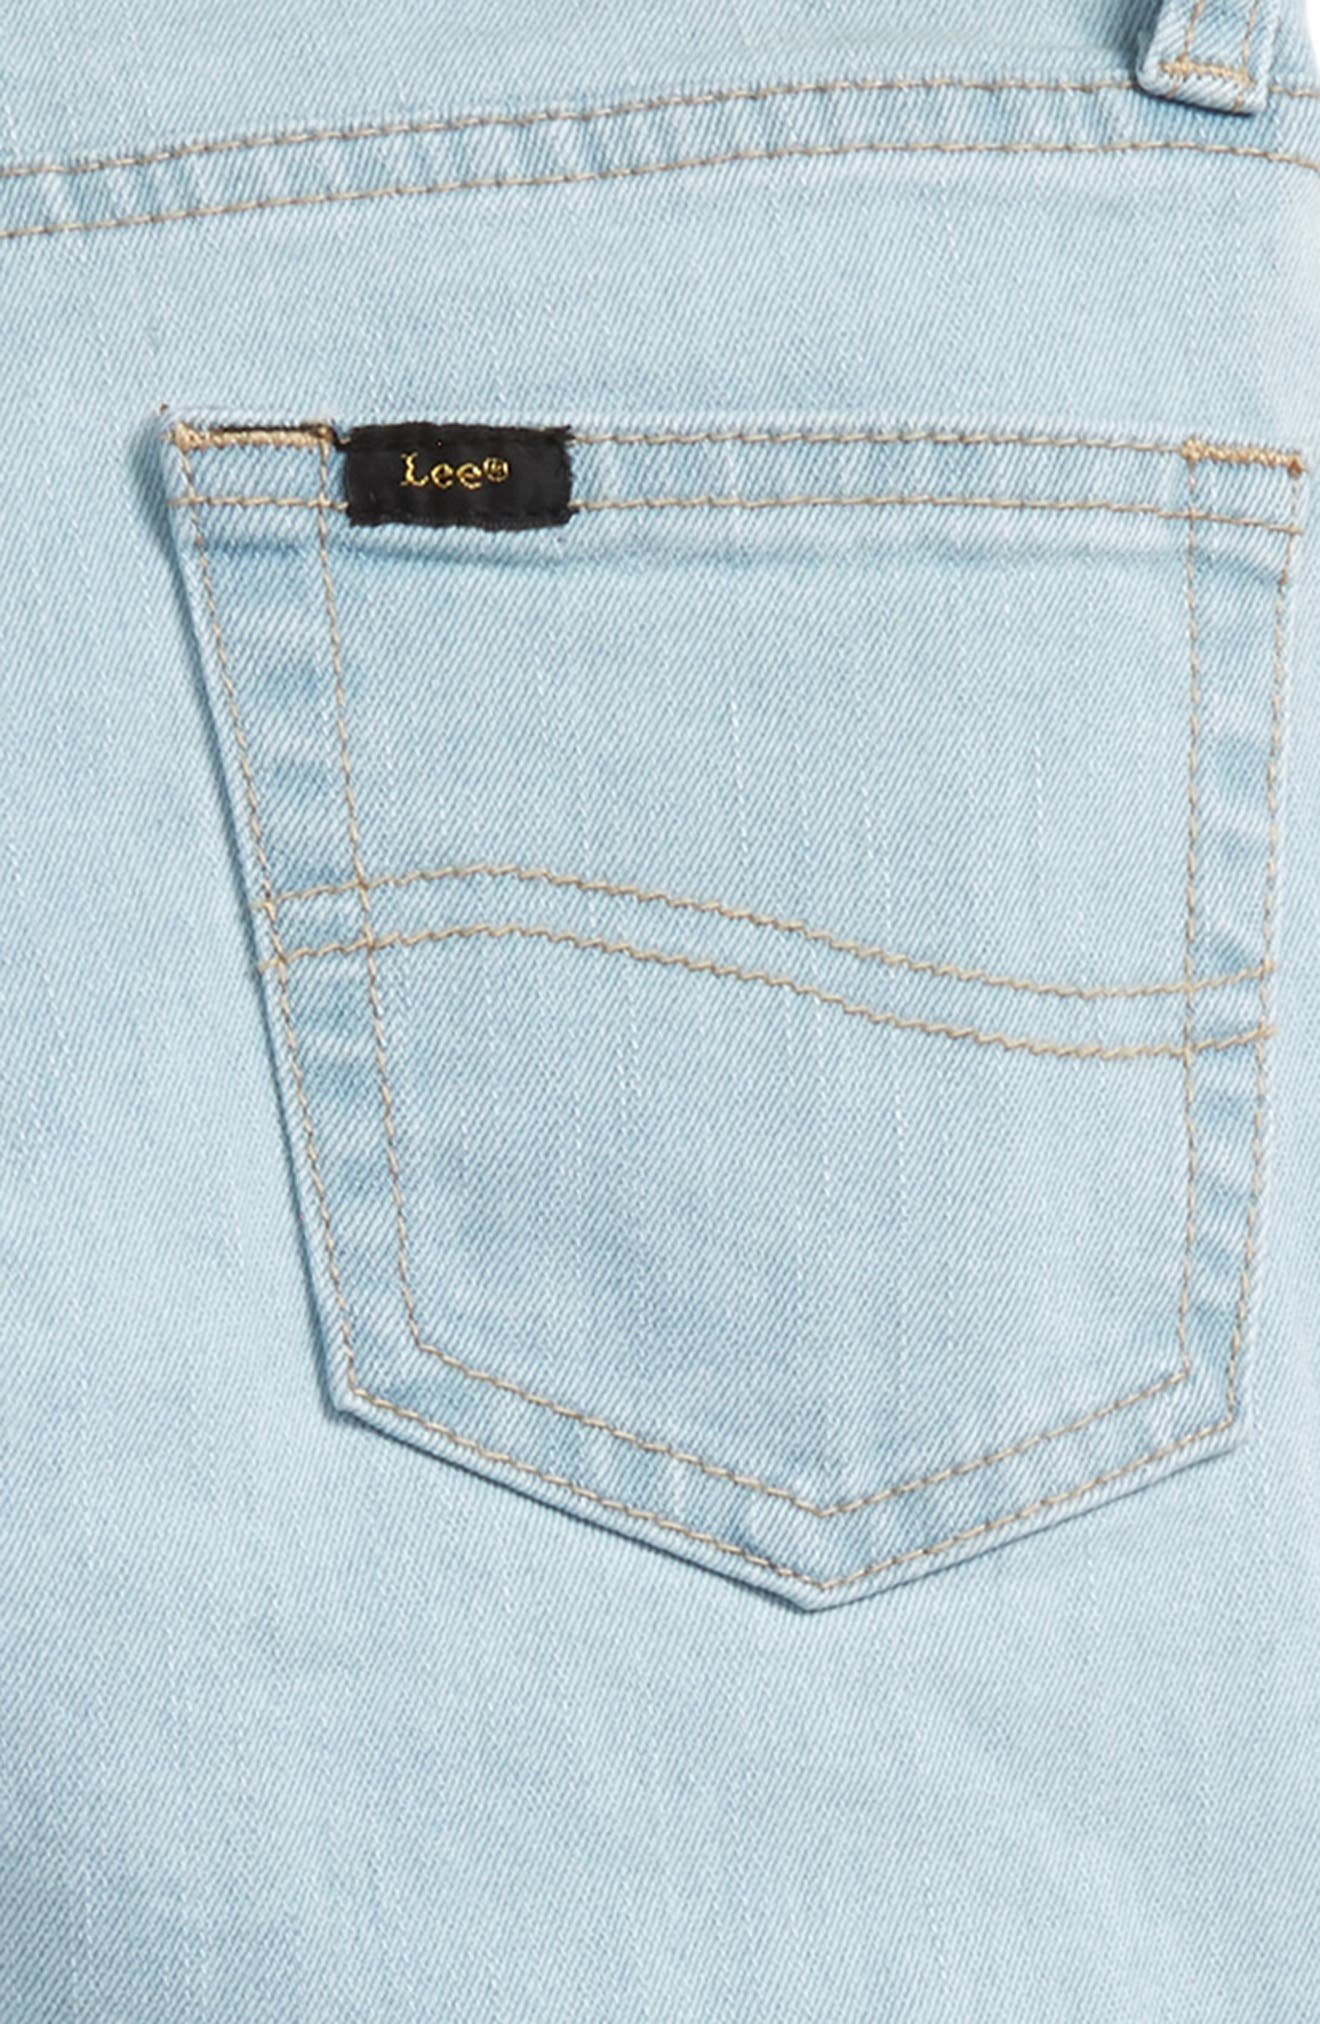 Skinny Fit Jeans,                             Alternate thumbnail 3, color,                             Waterfall